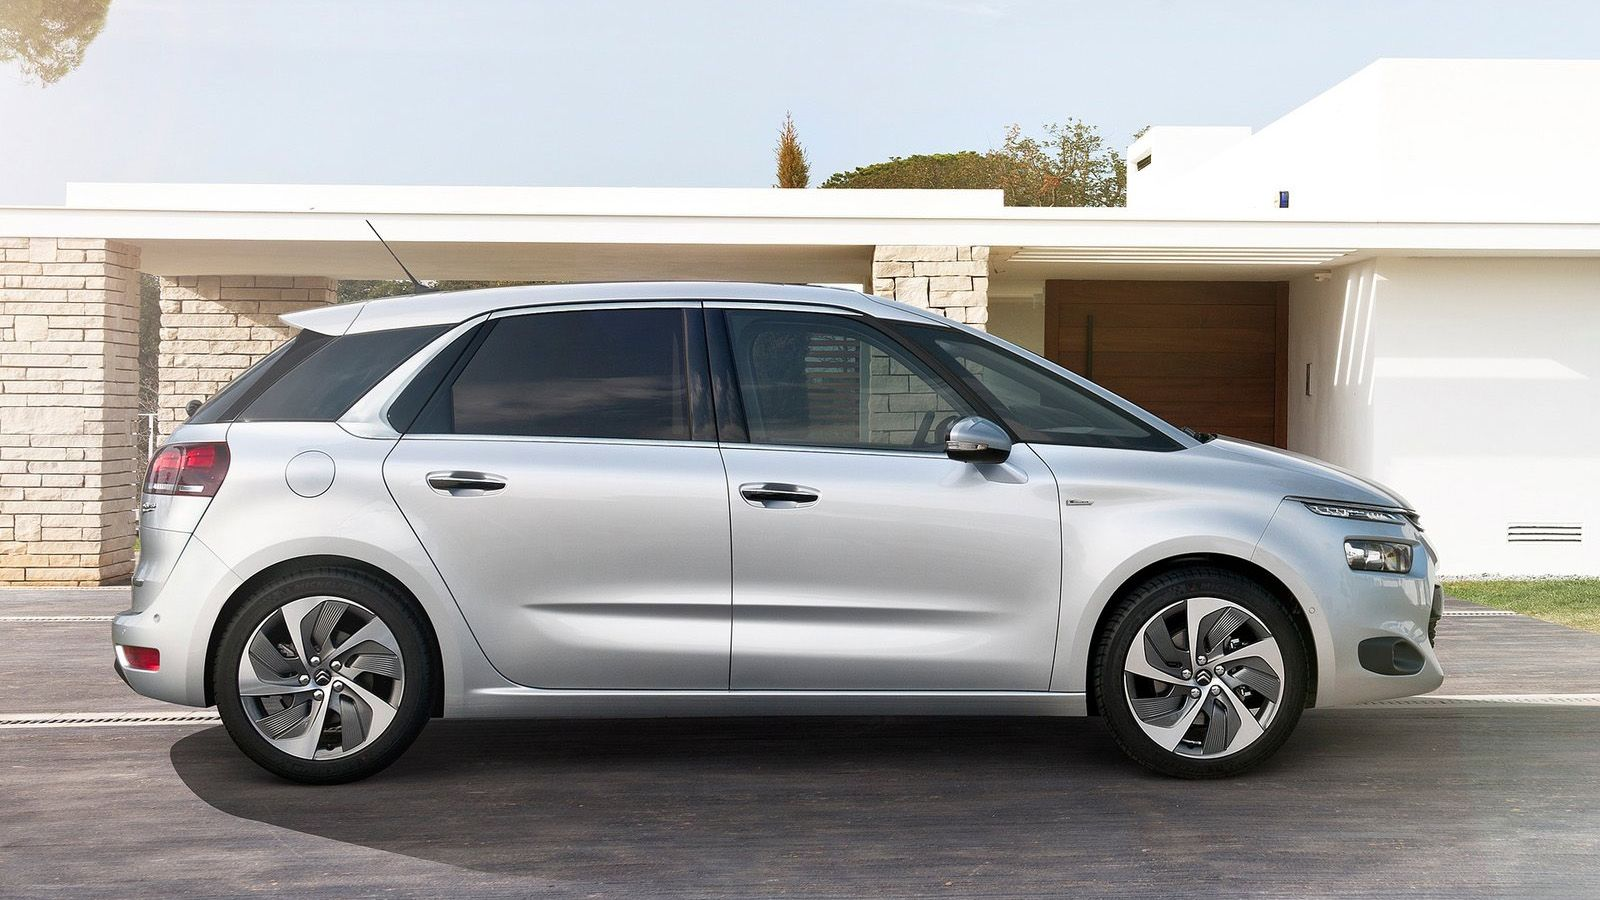 2015 citroen c4 picasso review first drive photos. Black Bedroom Furniture Sets. Home Design Ideas